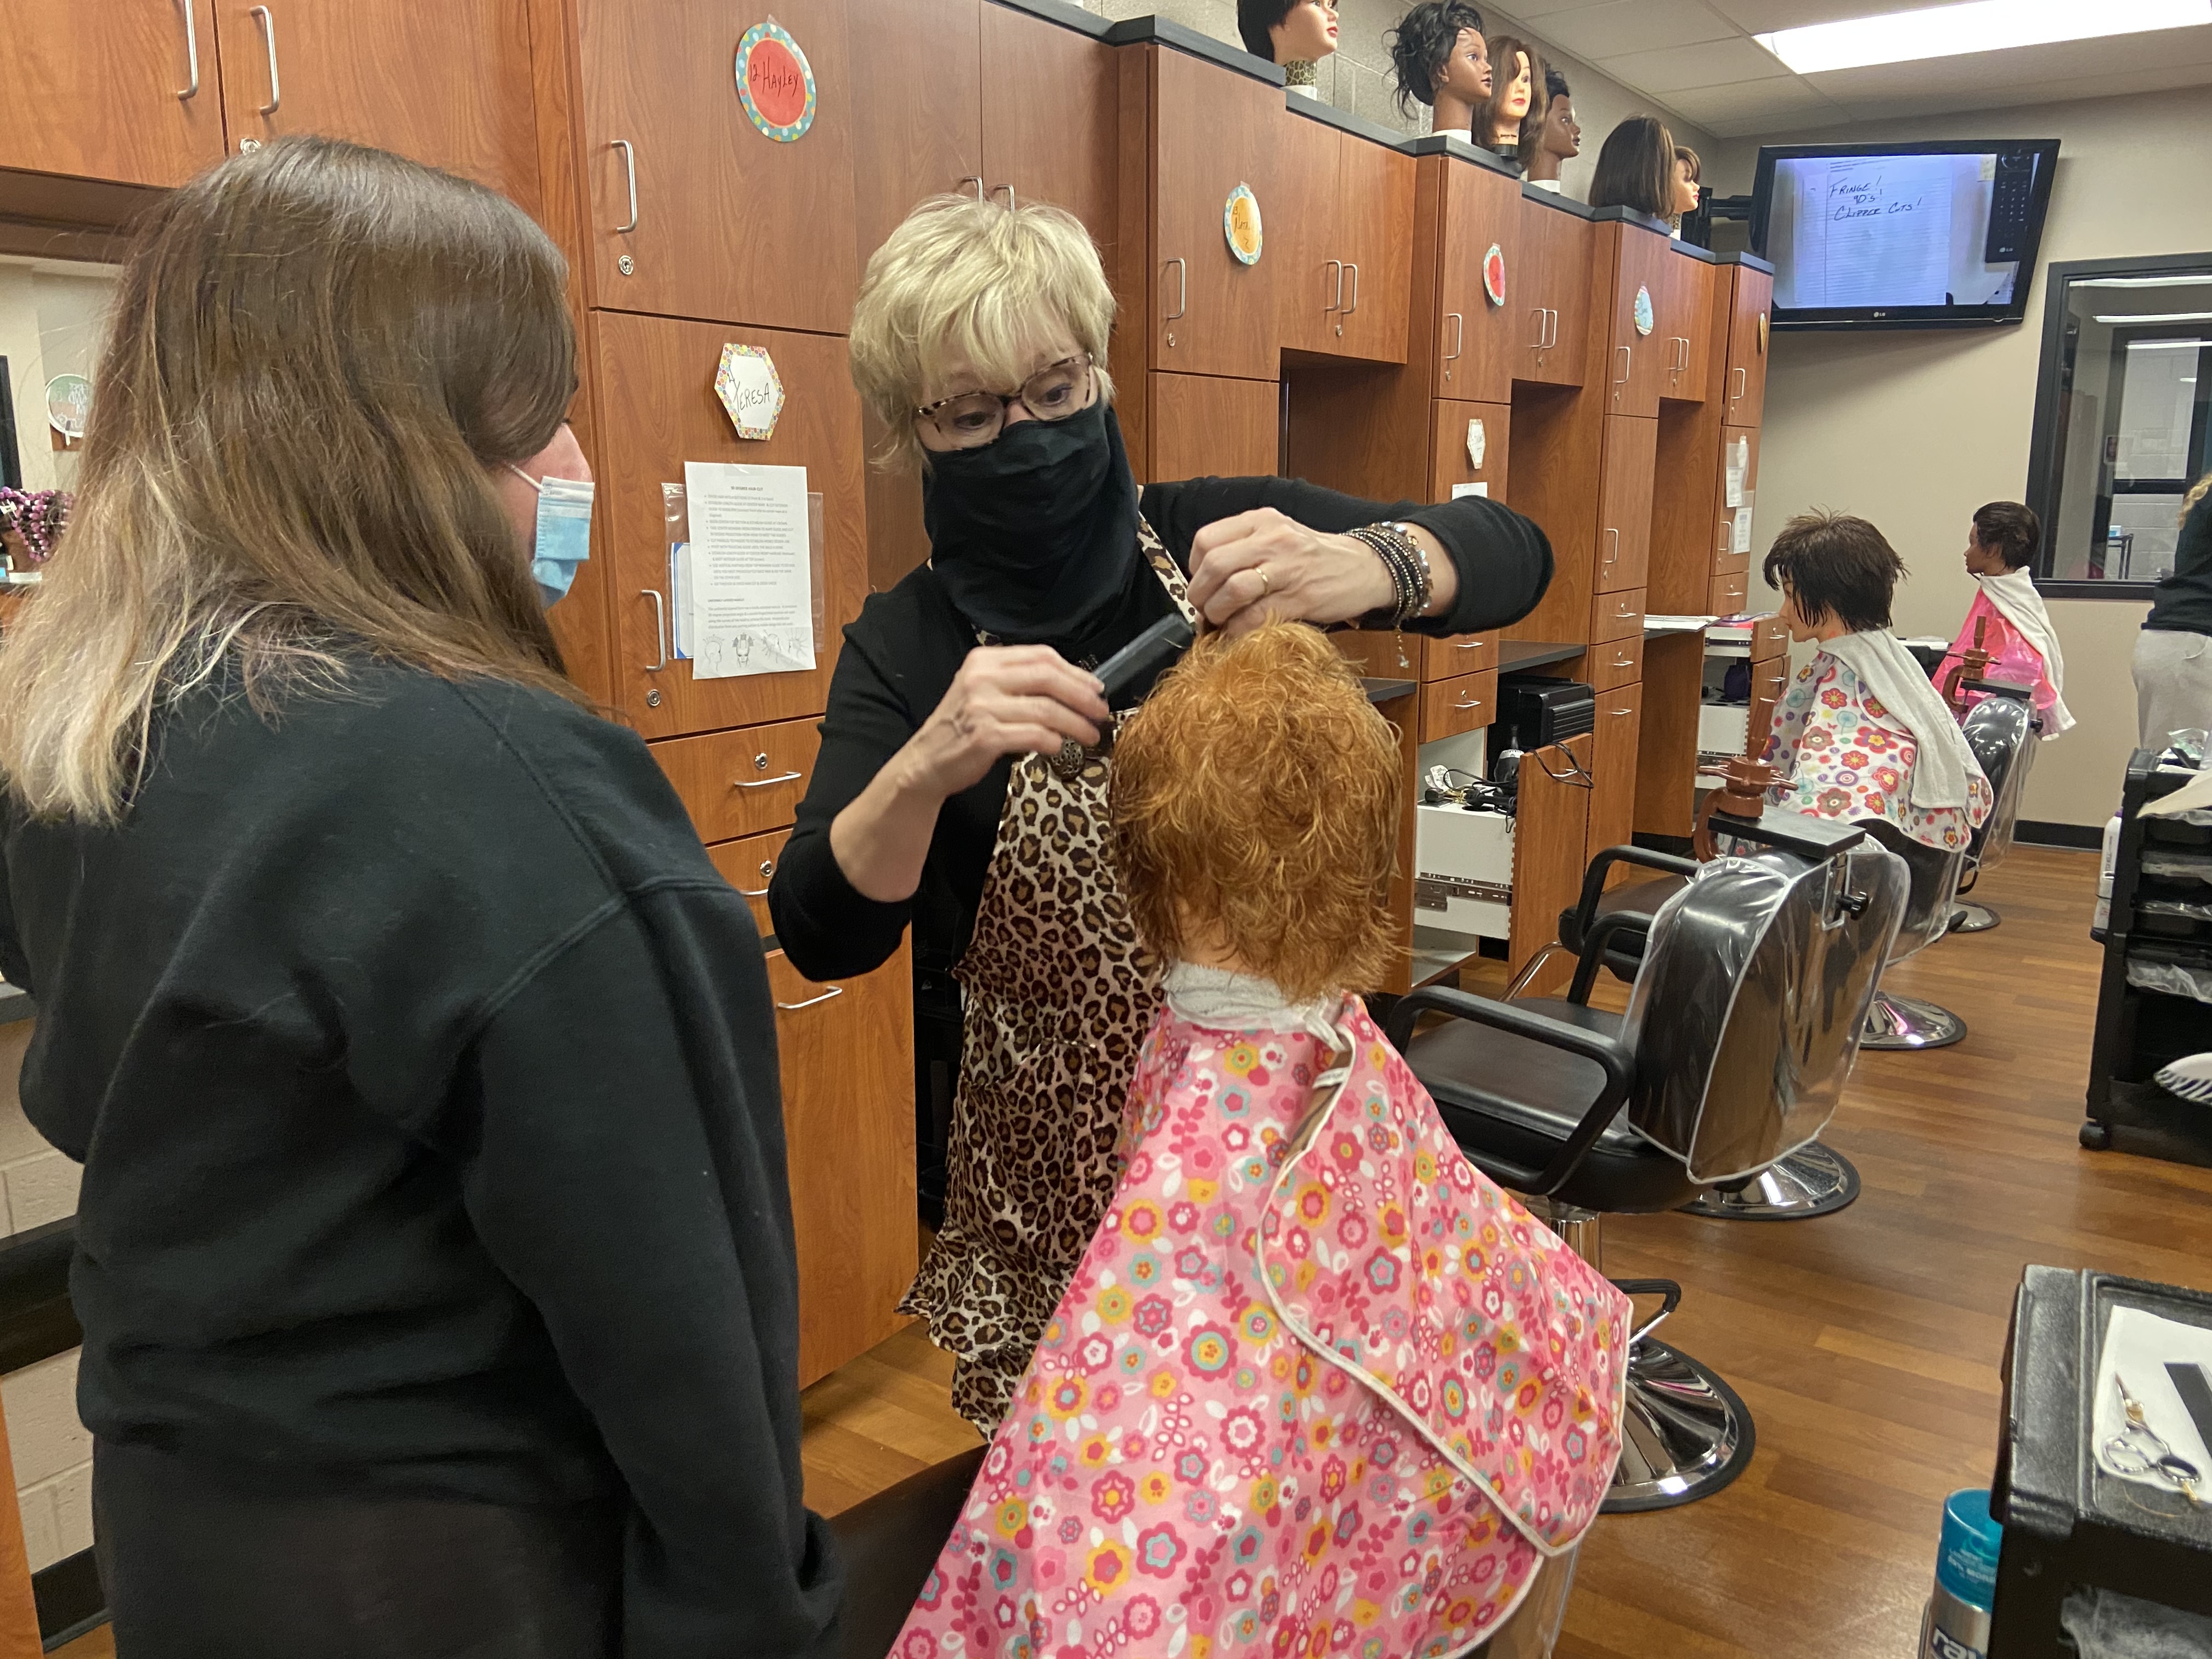 Instructor  giving lesson on mannequin